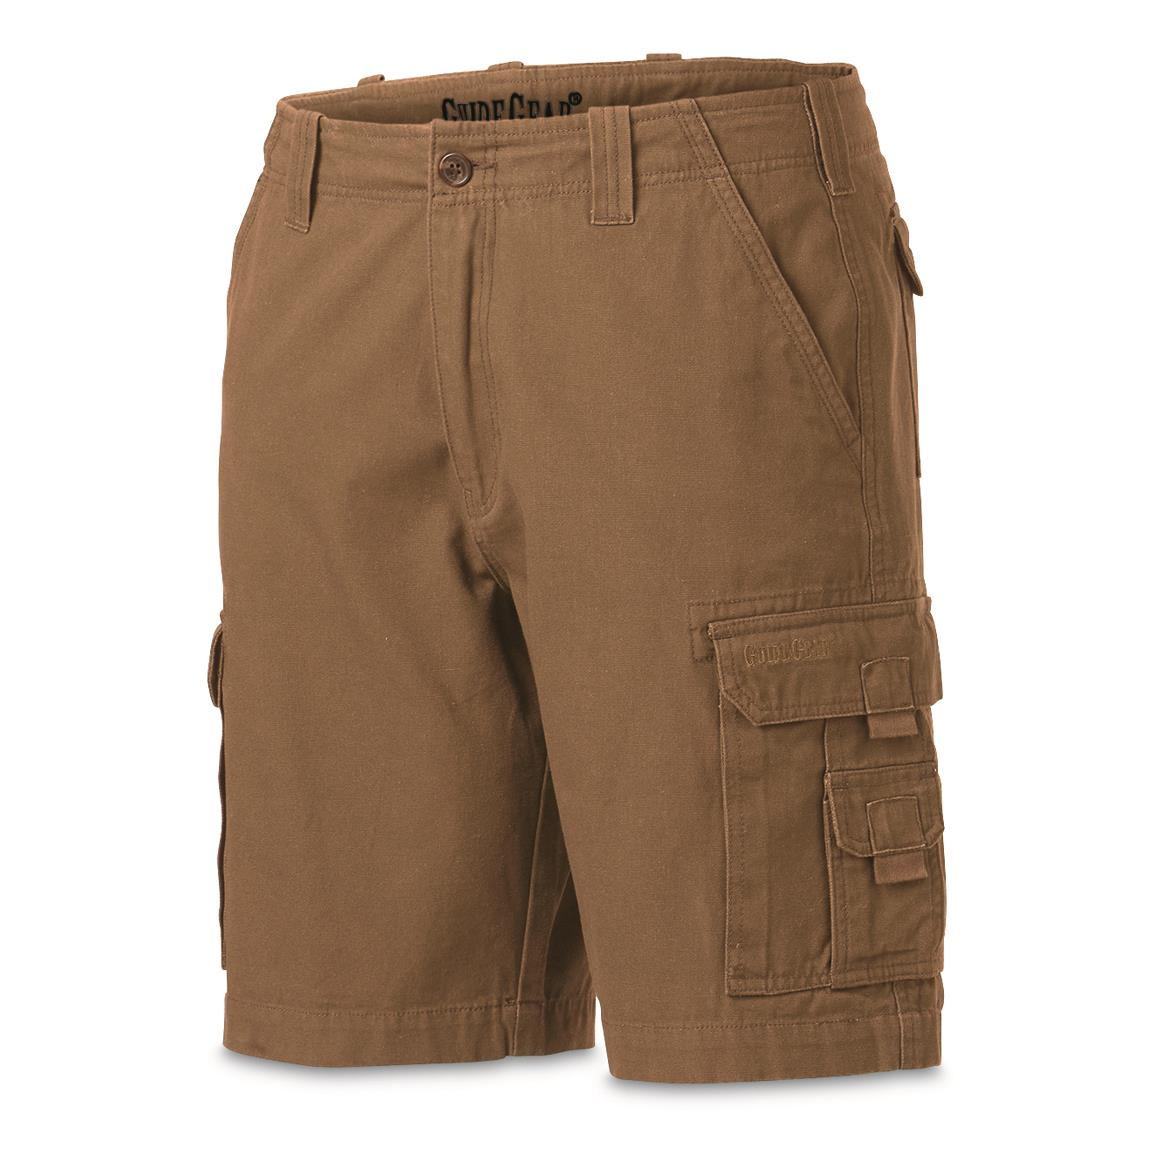 "Guide Gear Men's Outdoor Cargo Shorts, British Khaki, 10"" inseam"